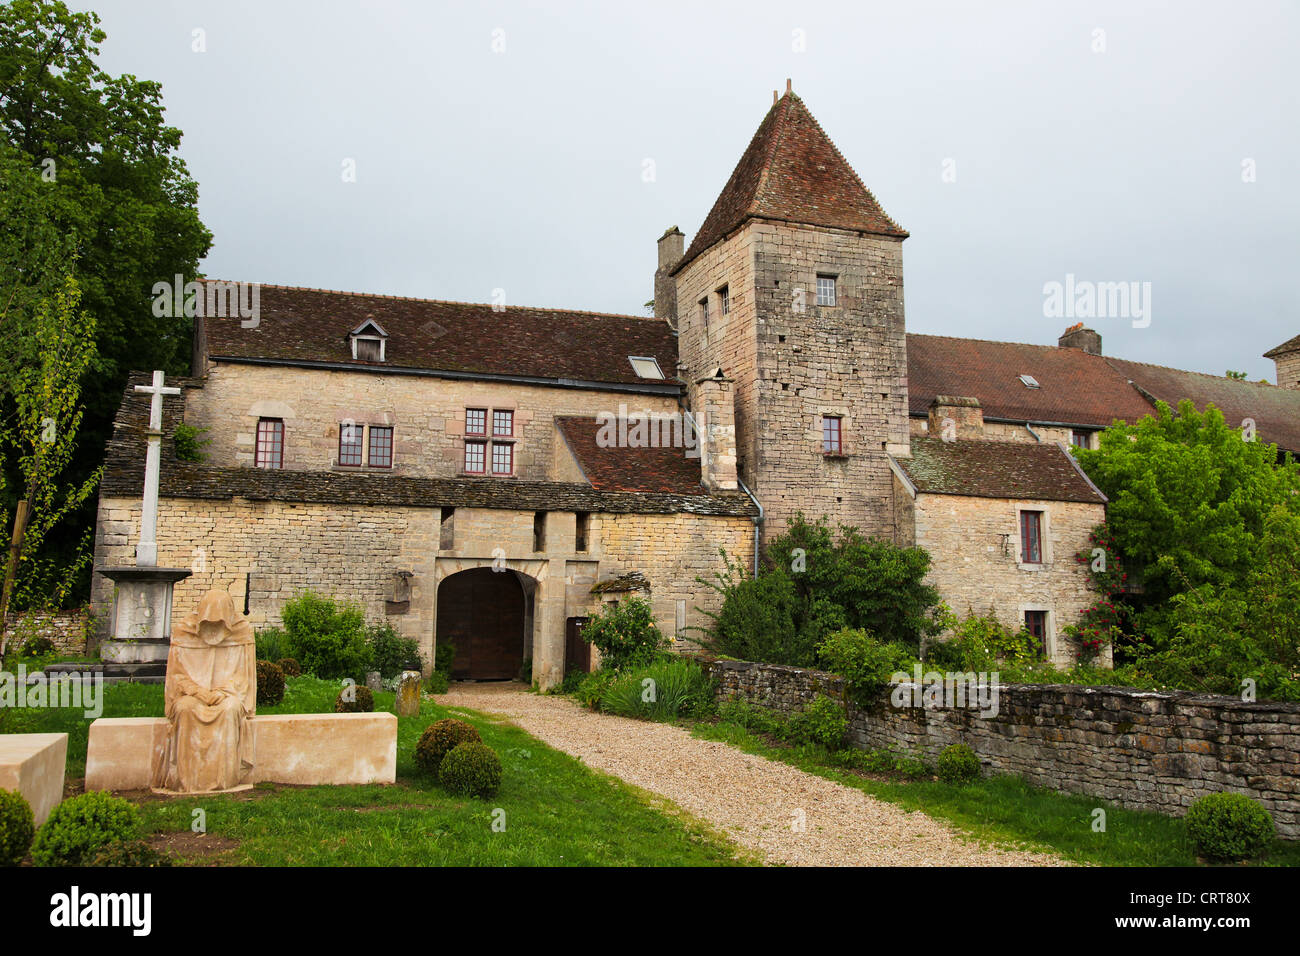 Chateau de Gevrey-Charmbertin in the Bourgogne wine region in France - Stock Image